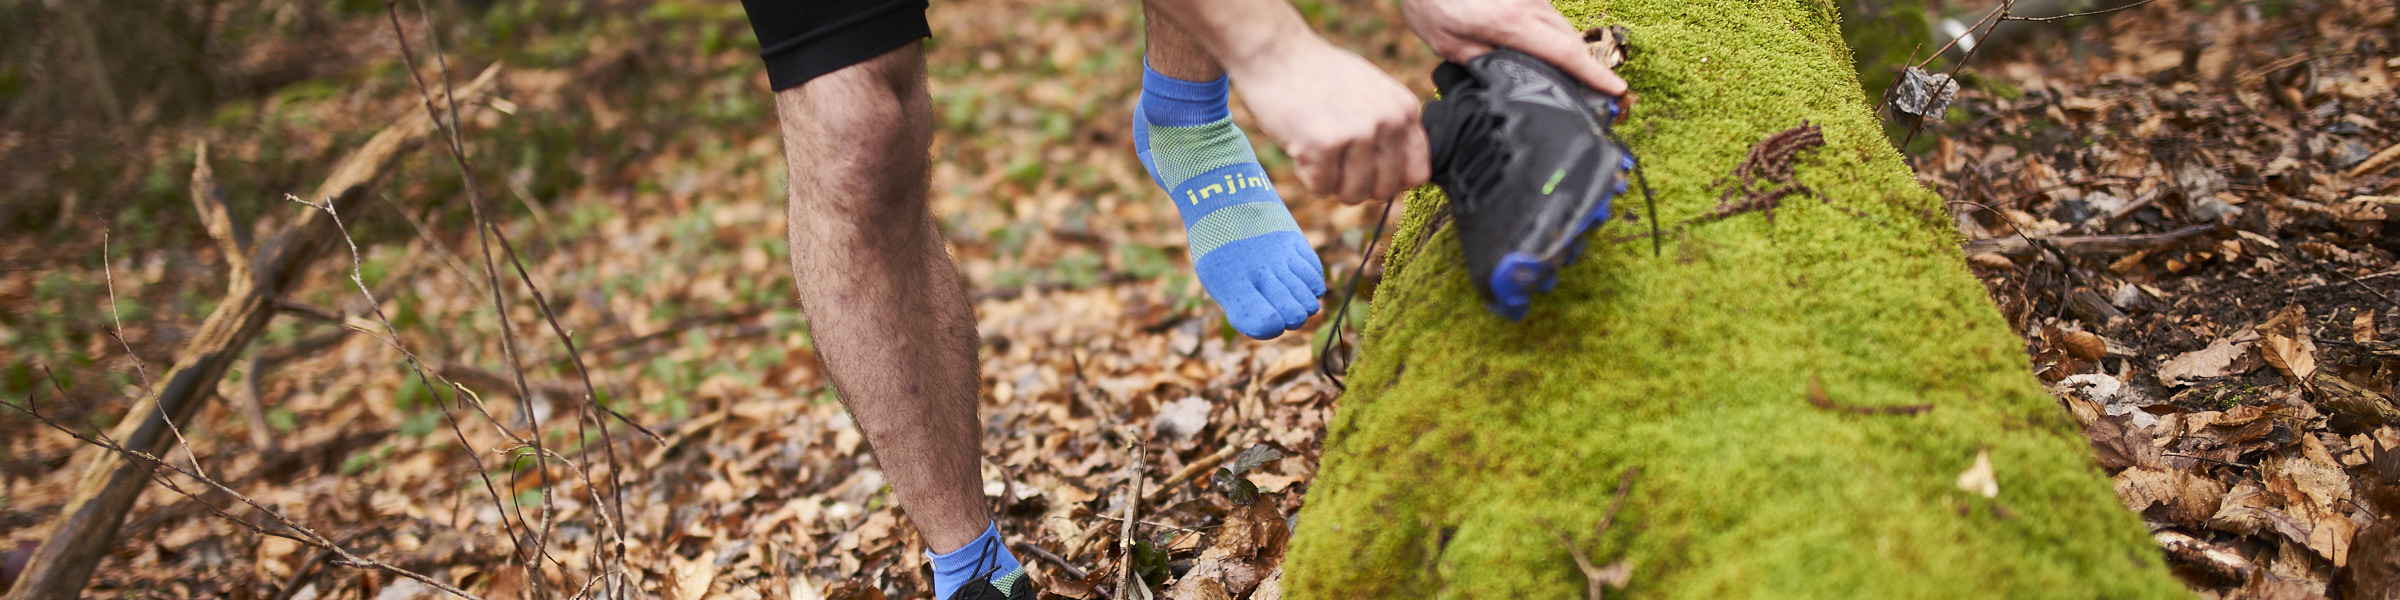 Injinji Outdoor Zehensocken